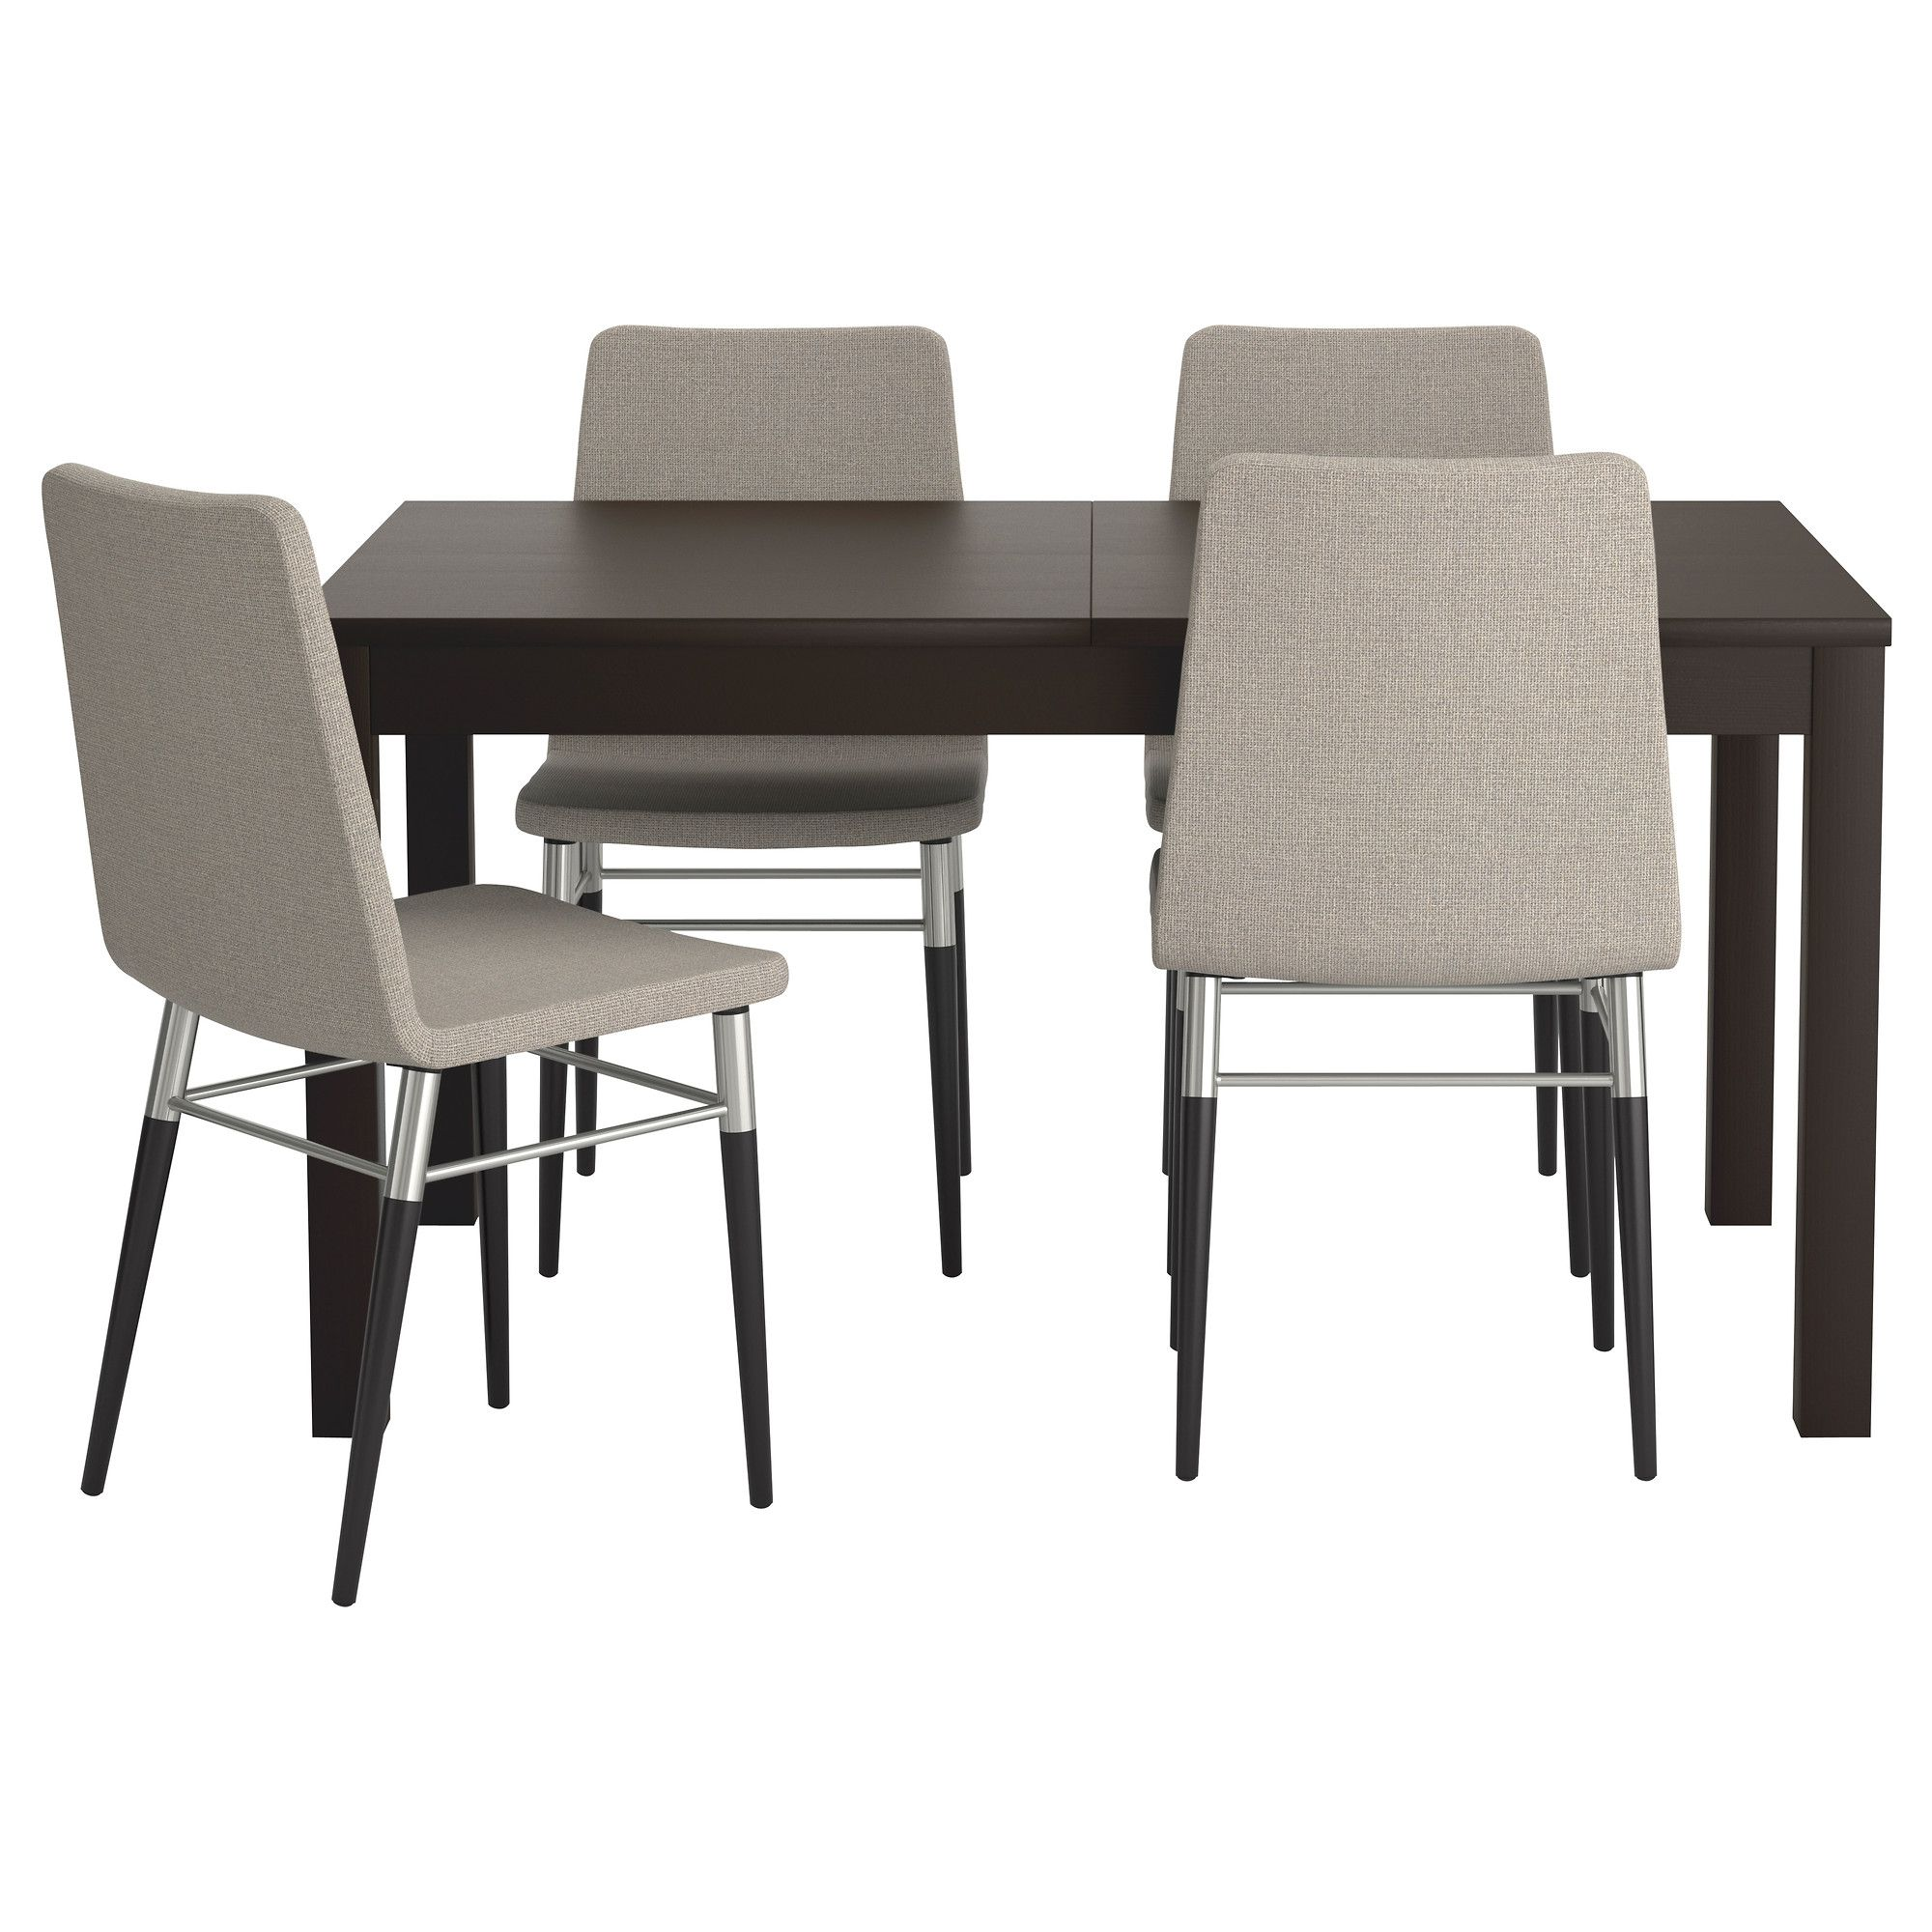 Furniture Furniture Singapore Home Decor Ikea Table And Chairs Ikea Dining Sets Dining Room Furniture Sets